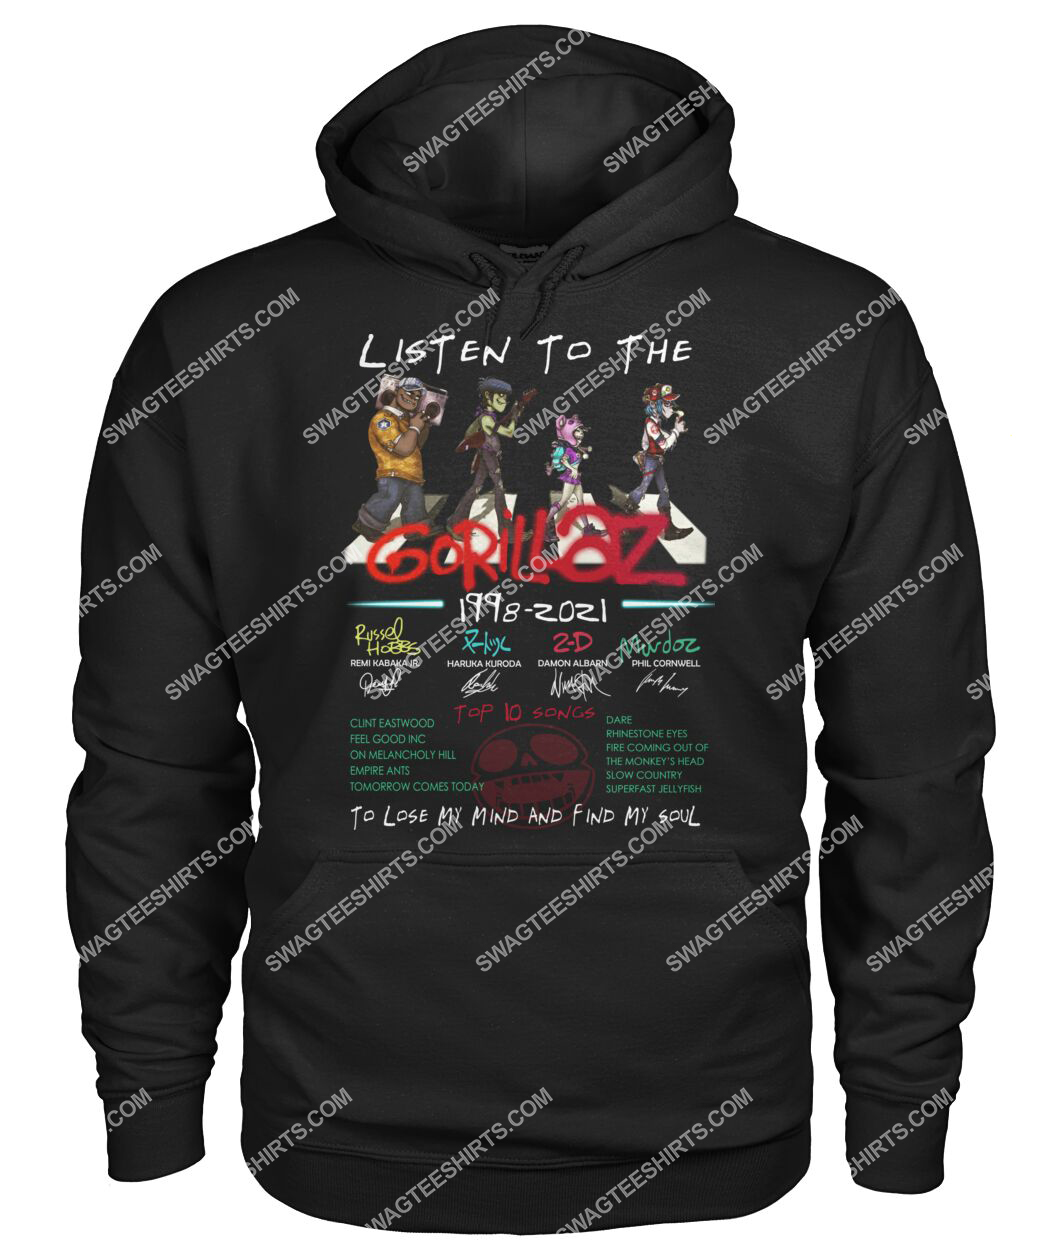 listen to the gorillaz to lose my mind and find my soul hoodie 1